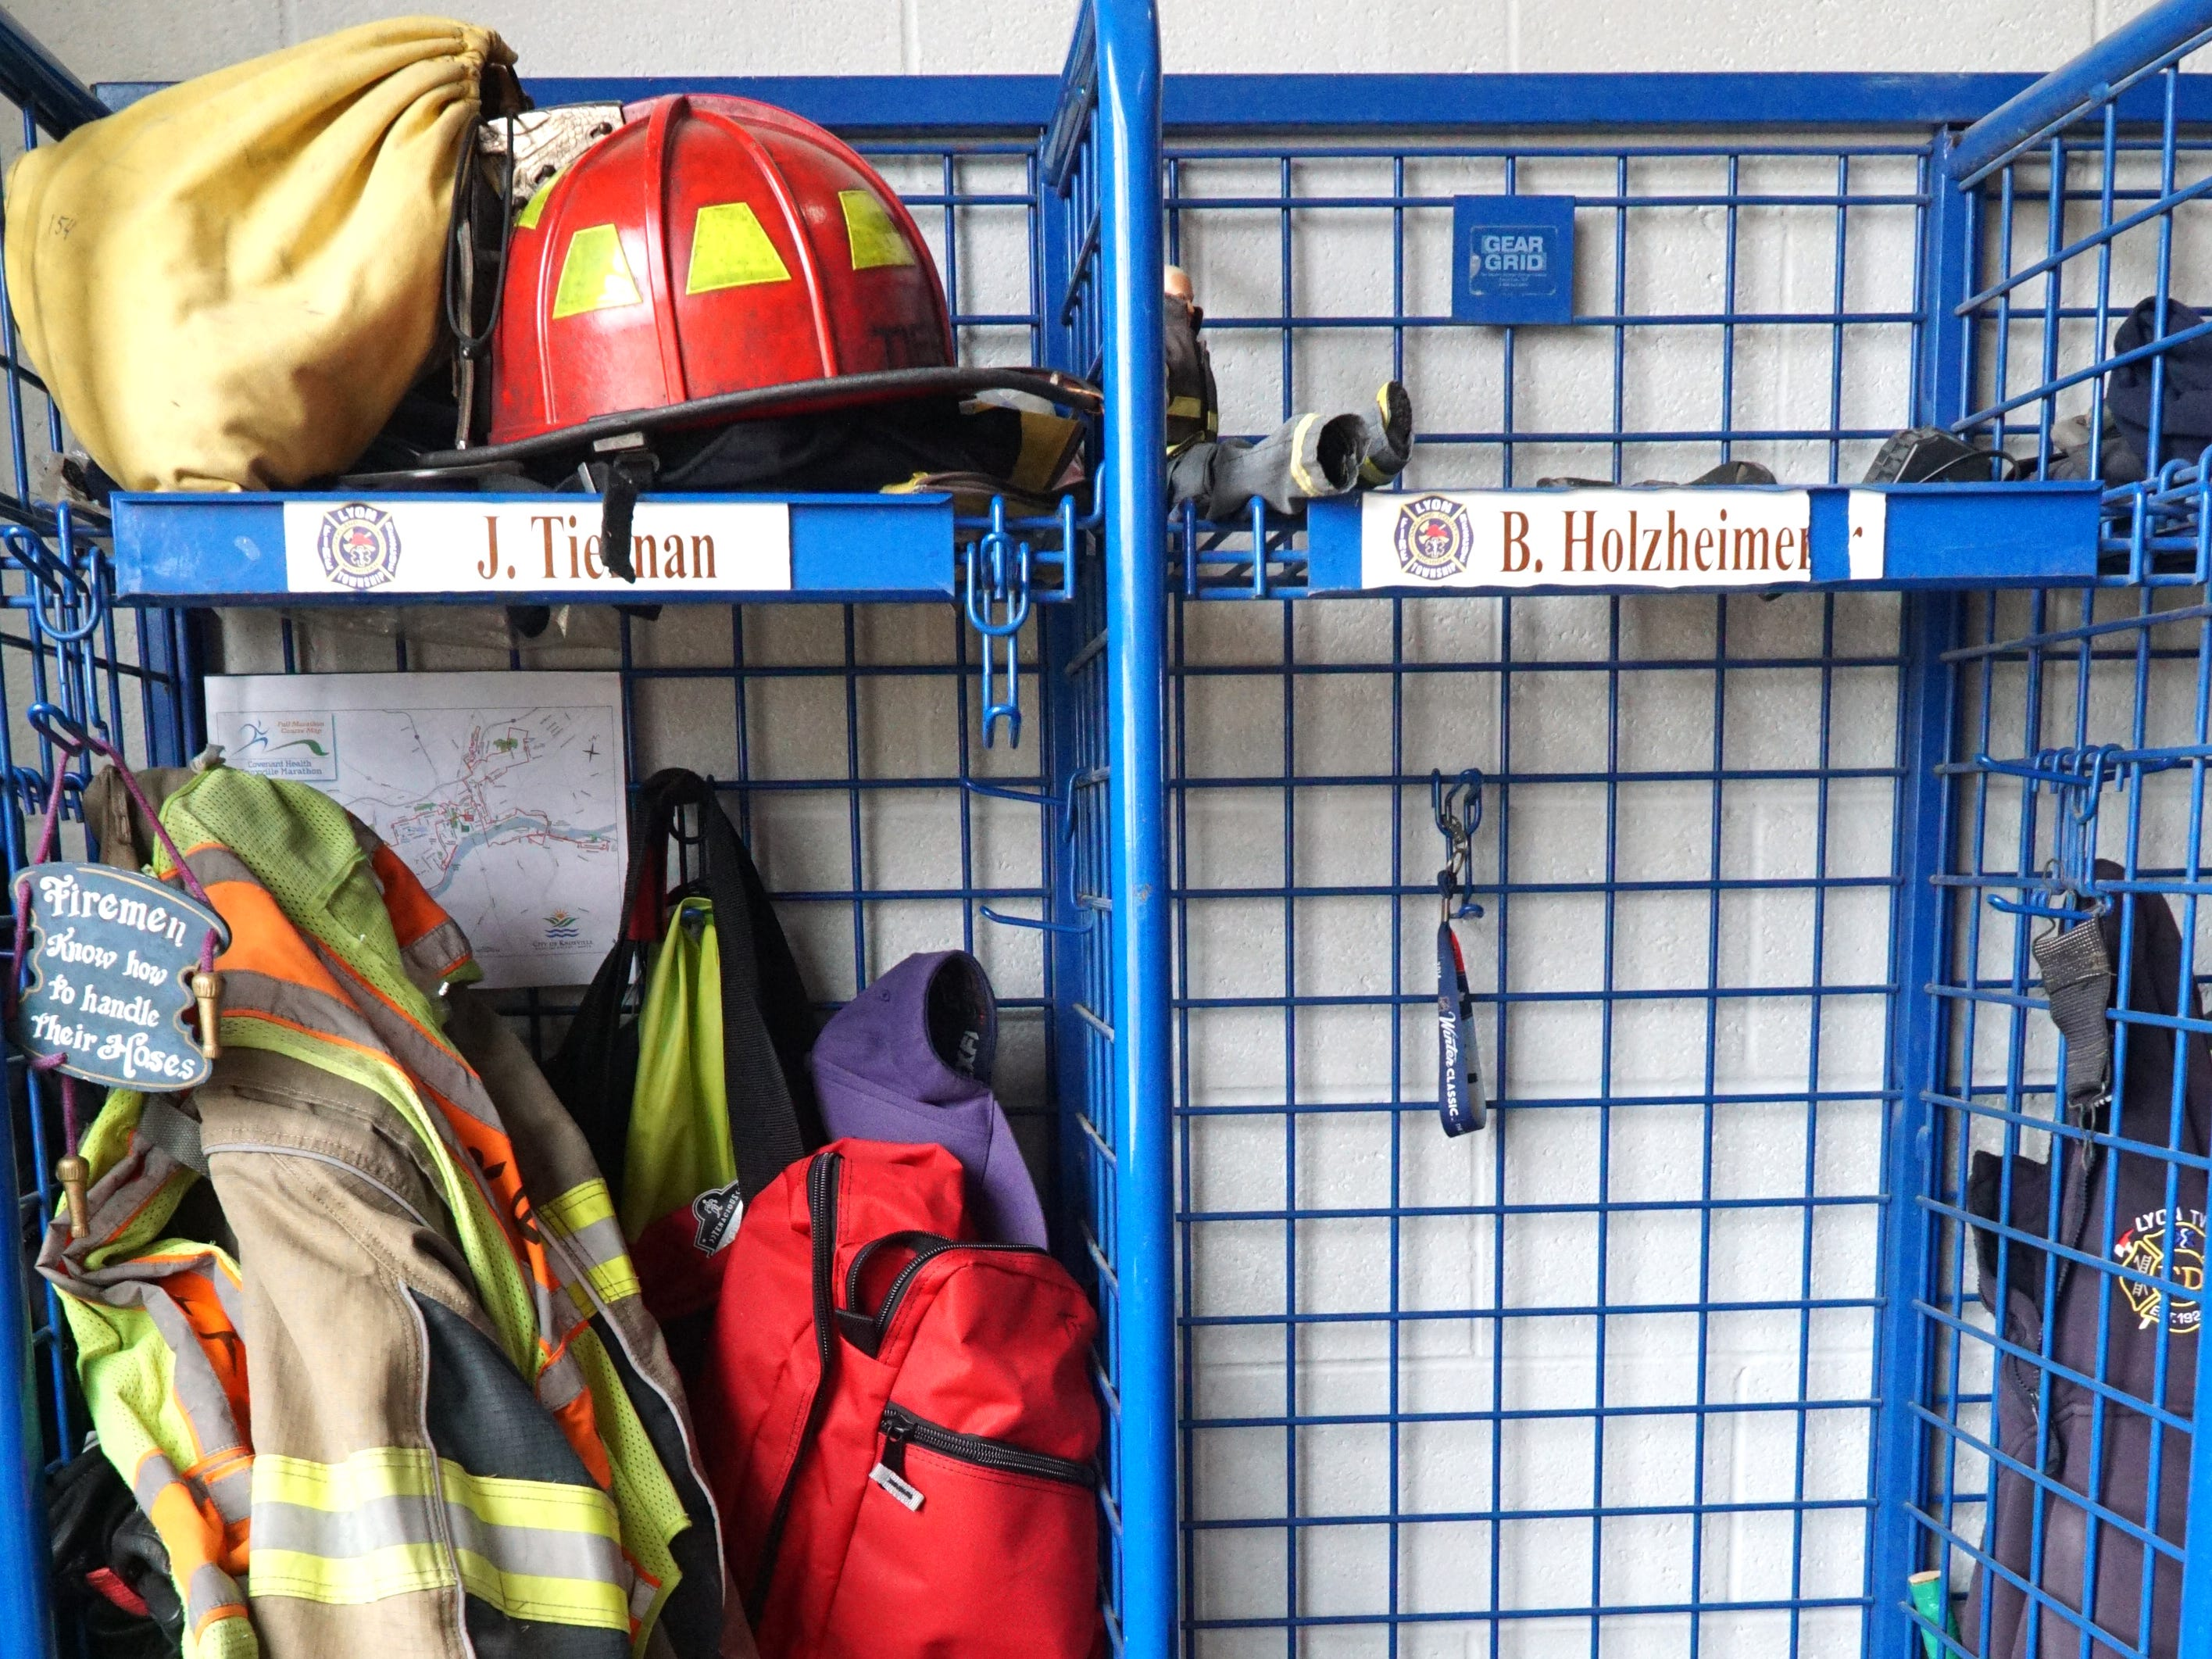 A firefighter's turn-out gear at the Lyon Township Fire Station No. 1.